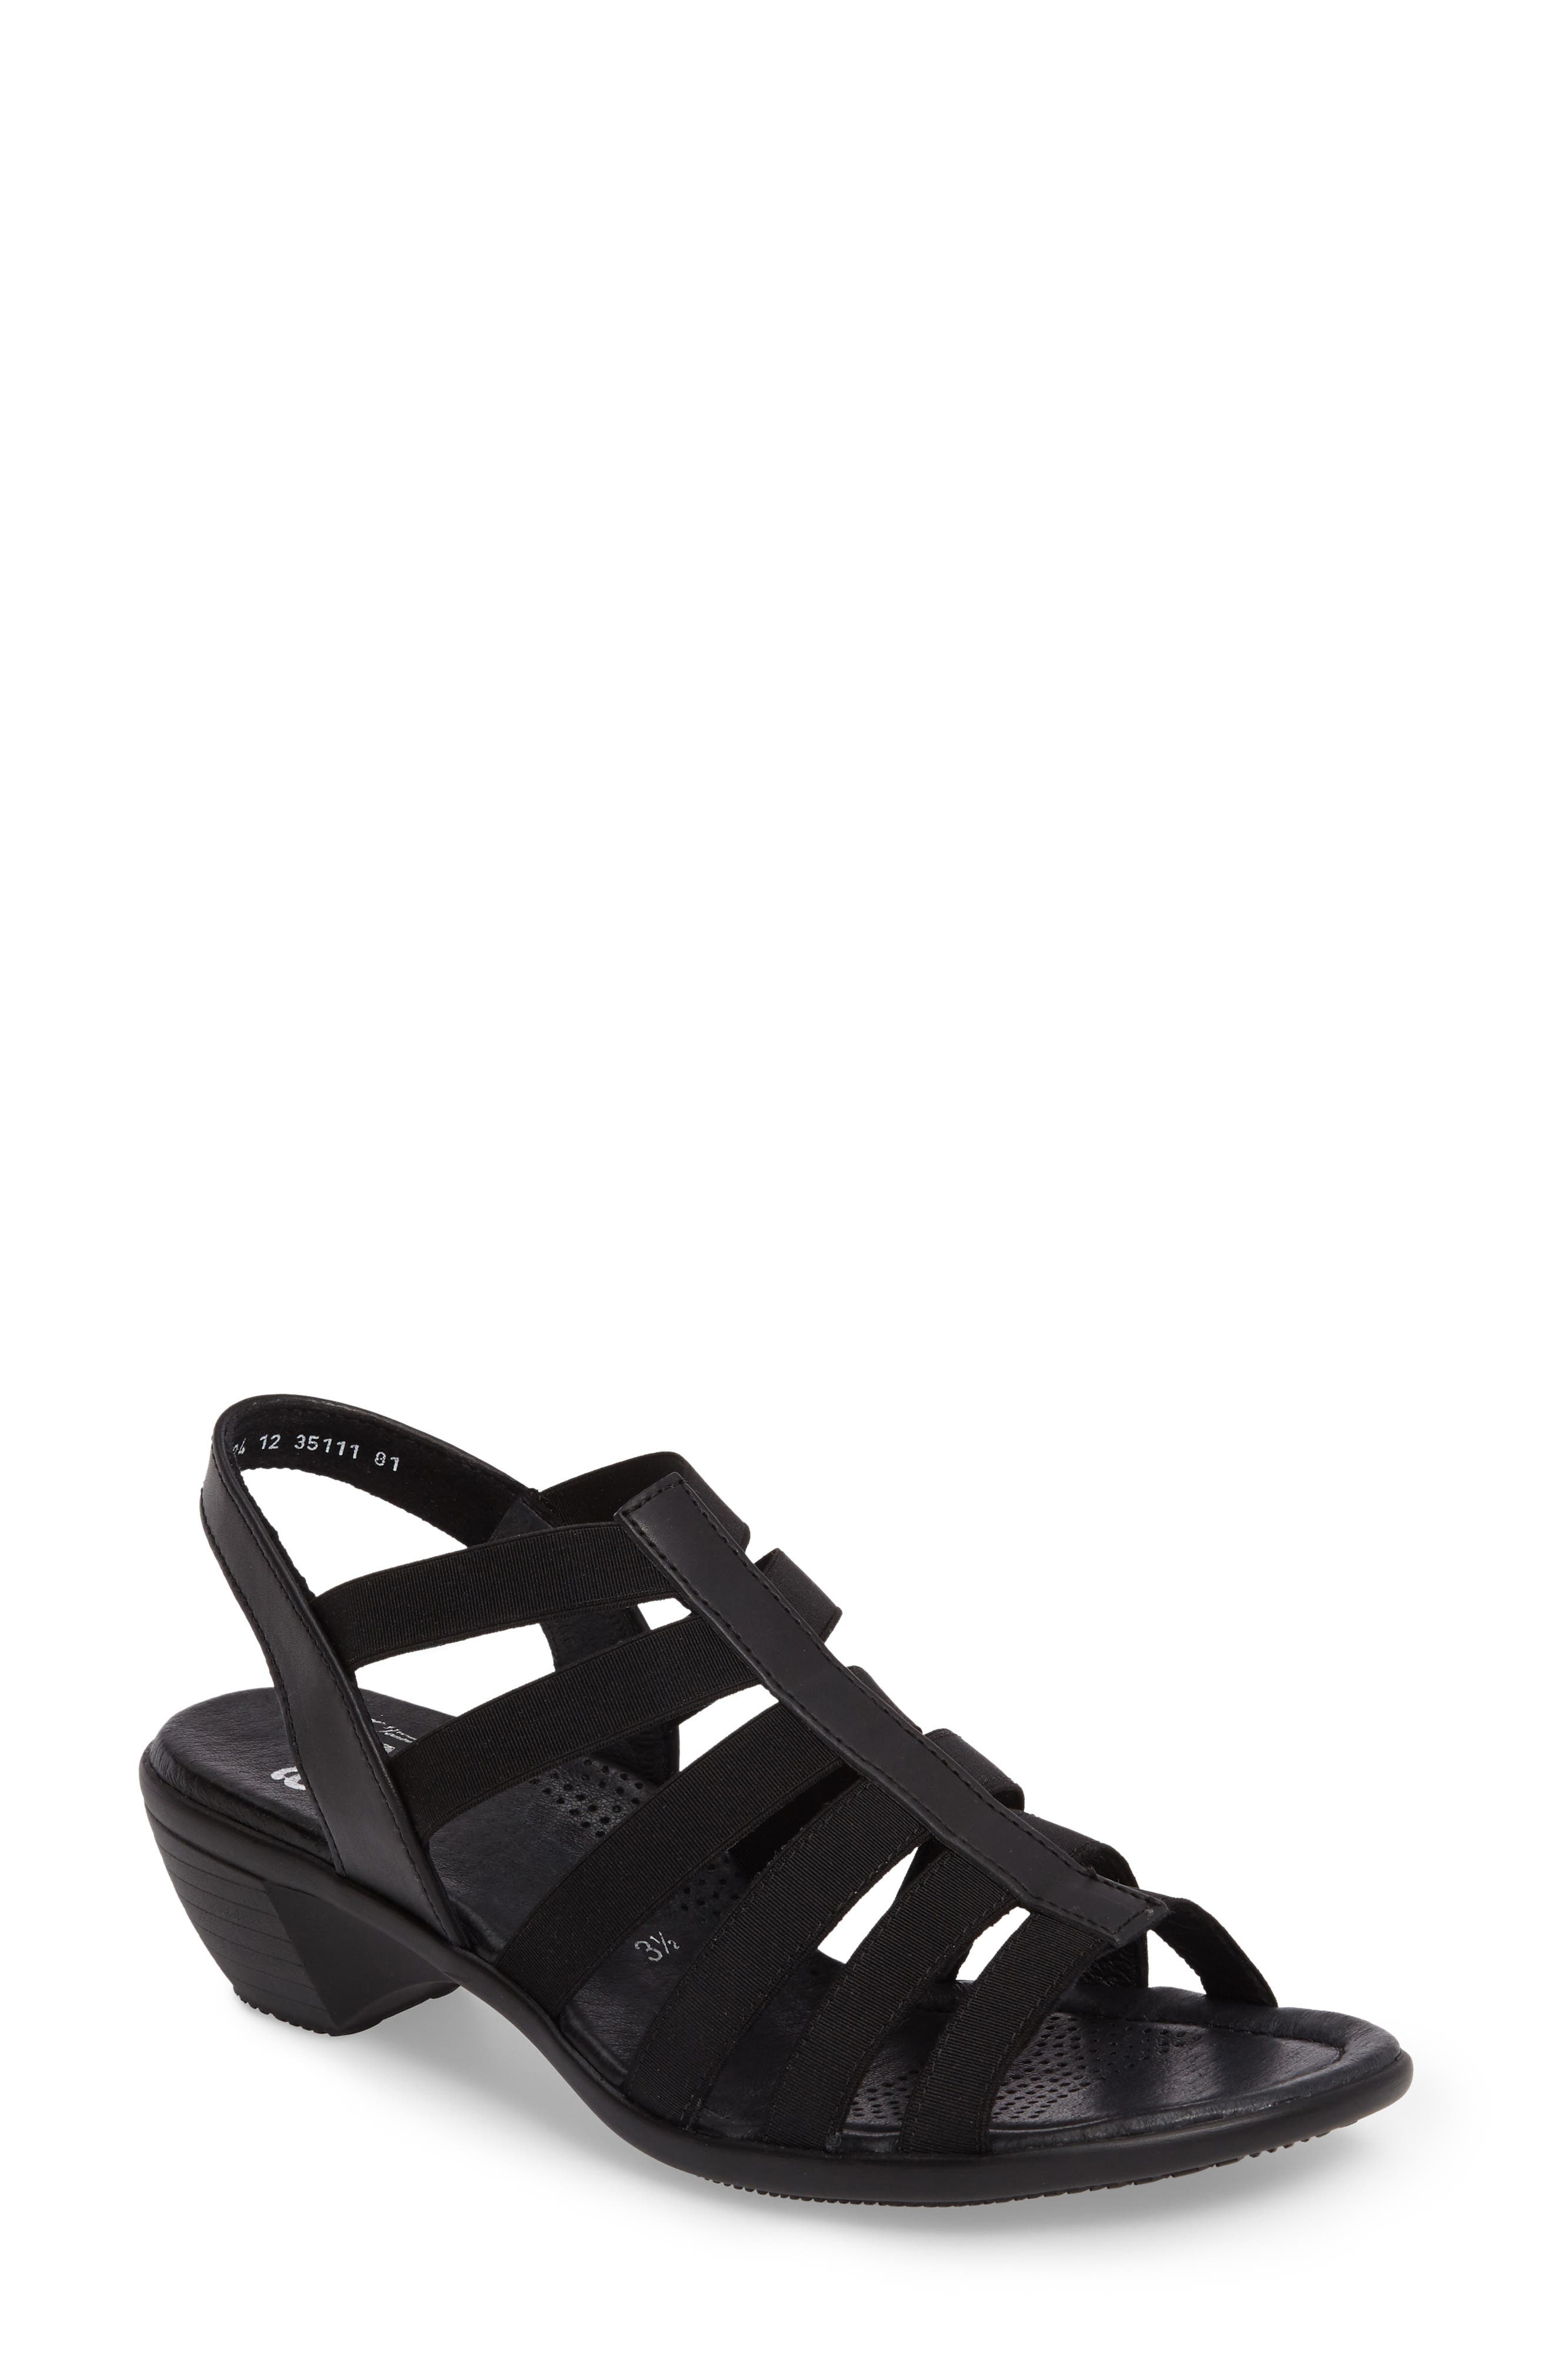 Peony Cage Sandal,                         Main,                         color, 001